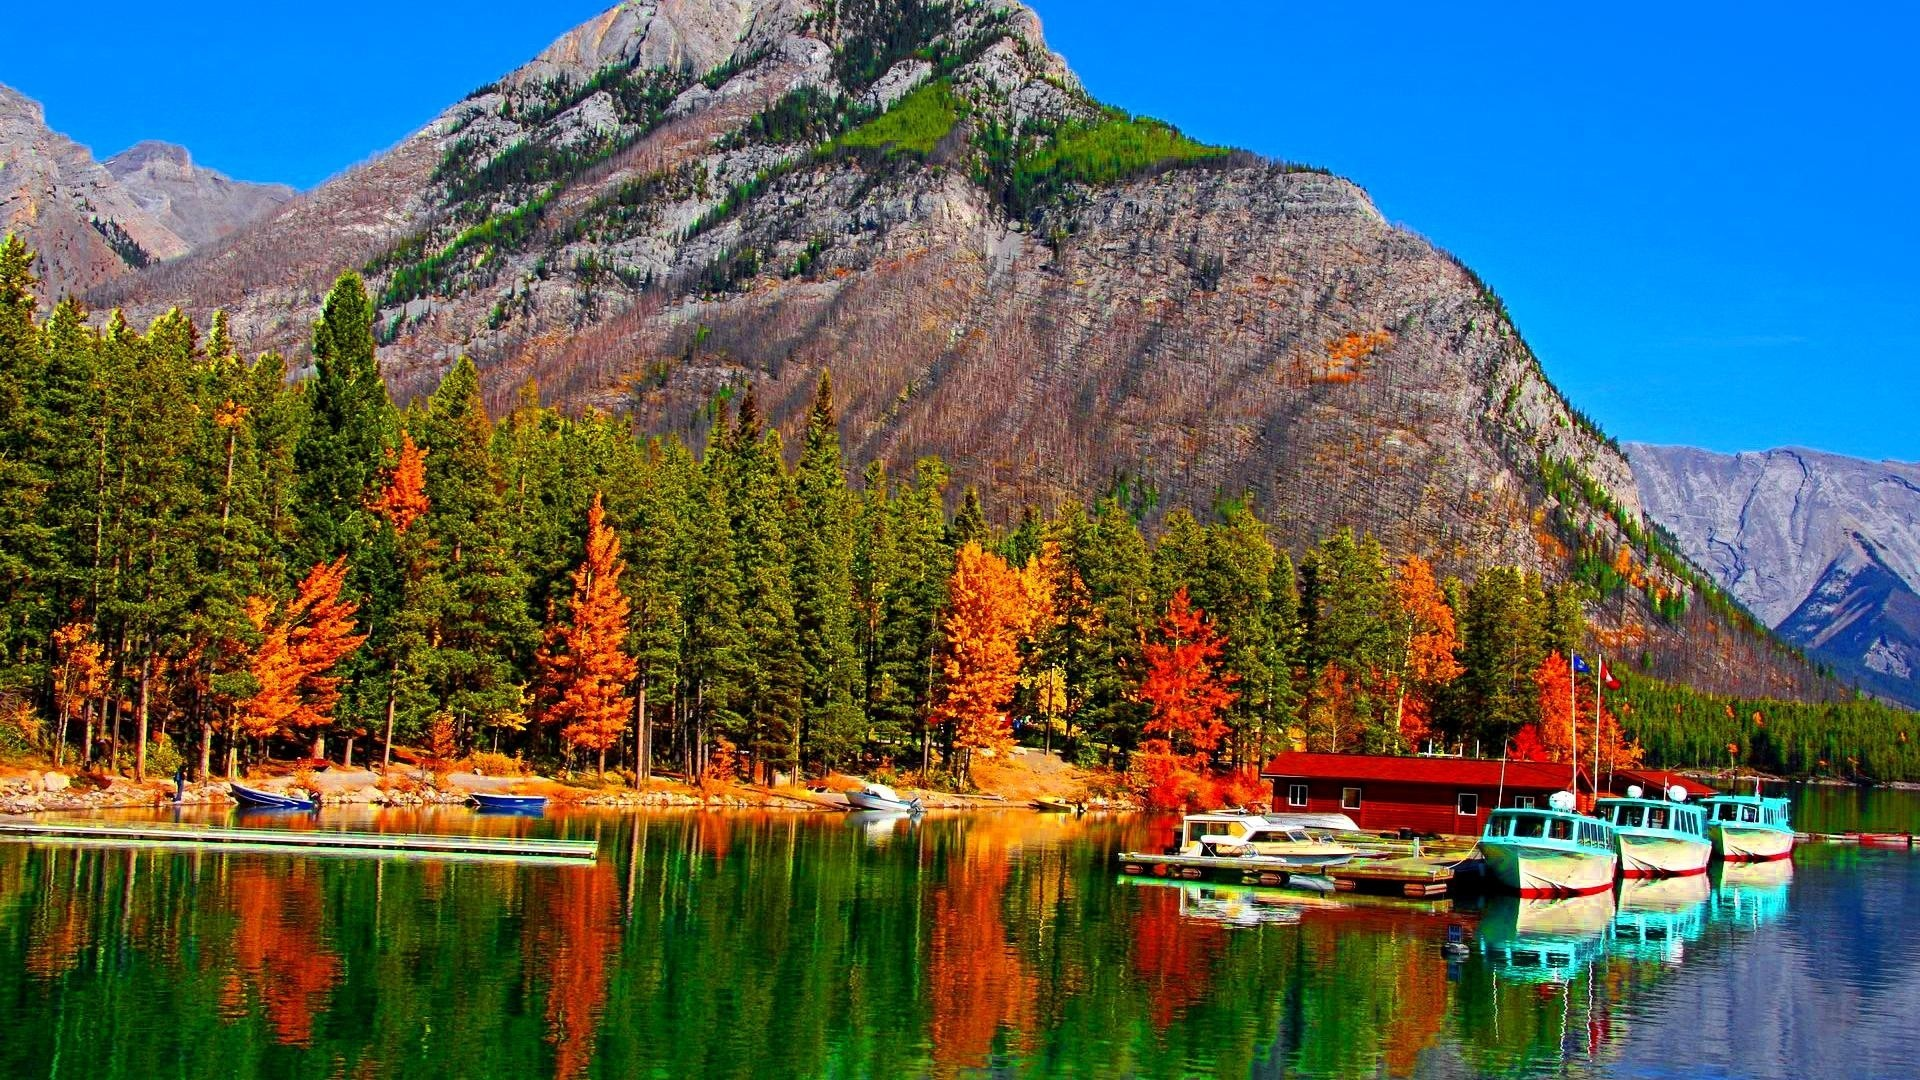 Fall Colors Lake Banff Canada Mountain Reflection Boats Autumn Forest Docks  Wallpaper – 1920×1080